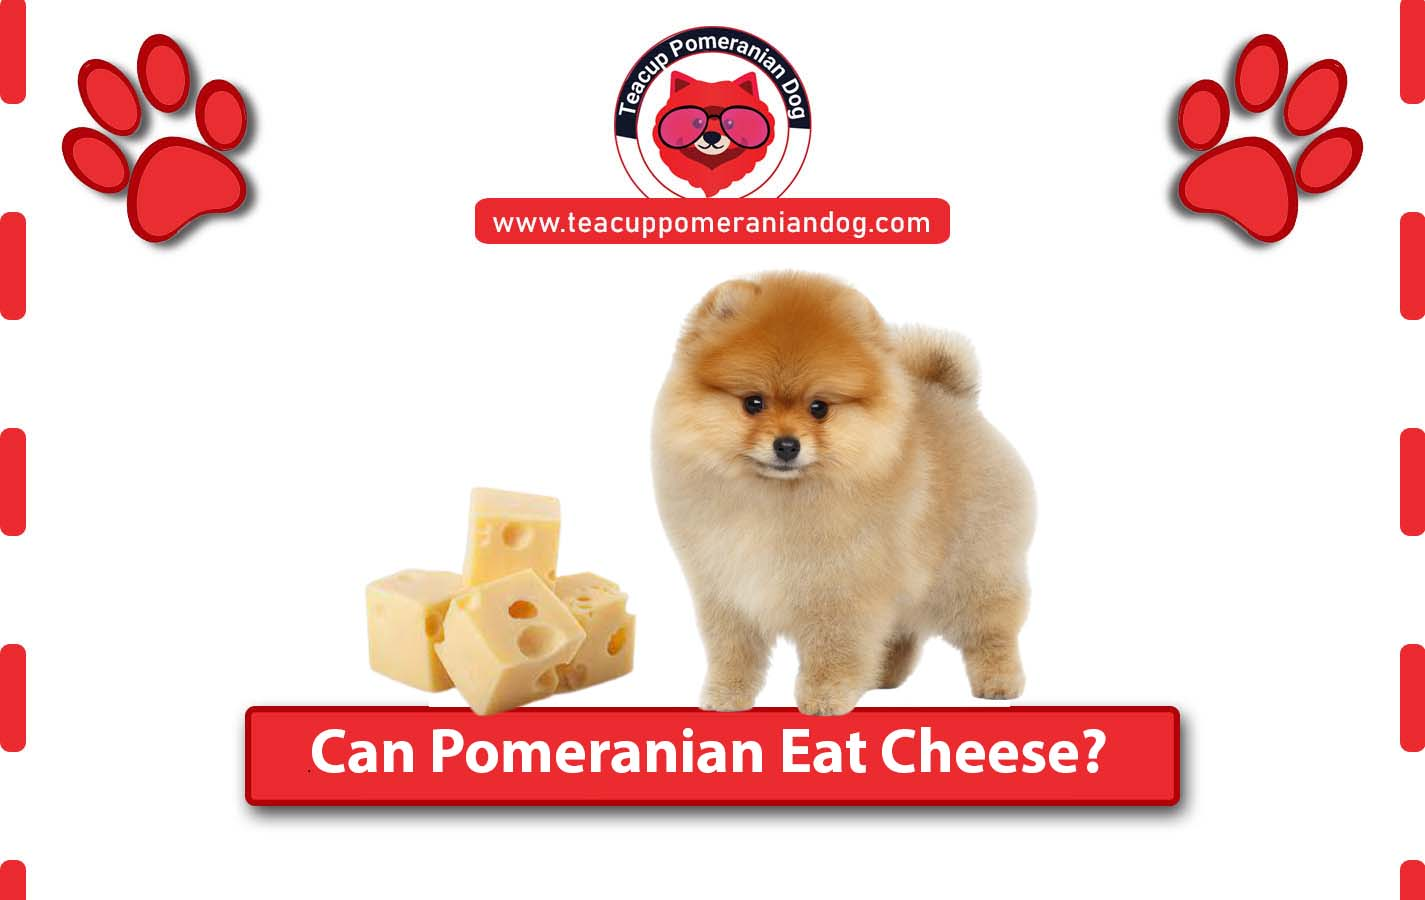 Can Pomeranian Eat Cheese